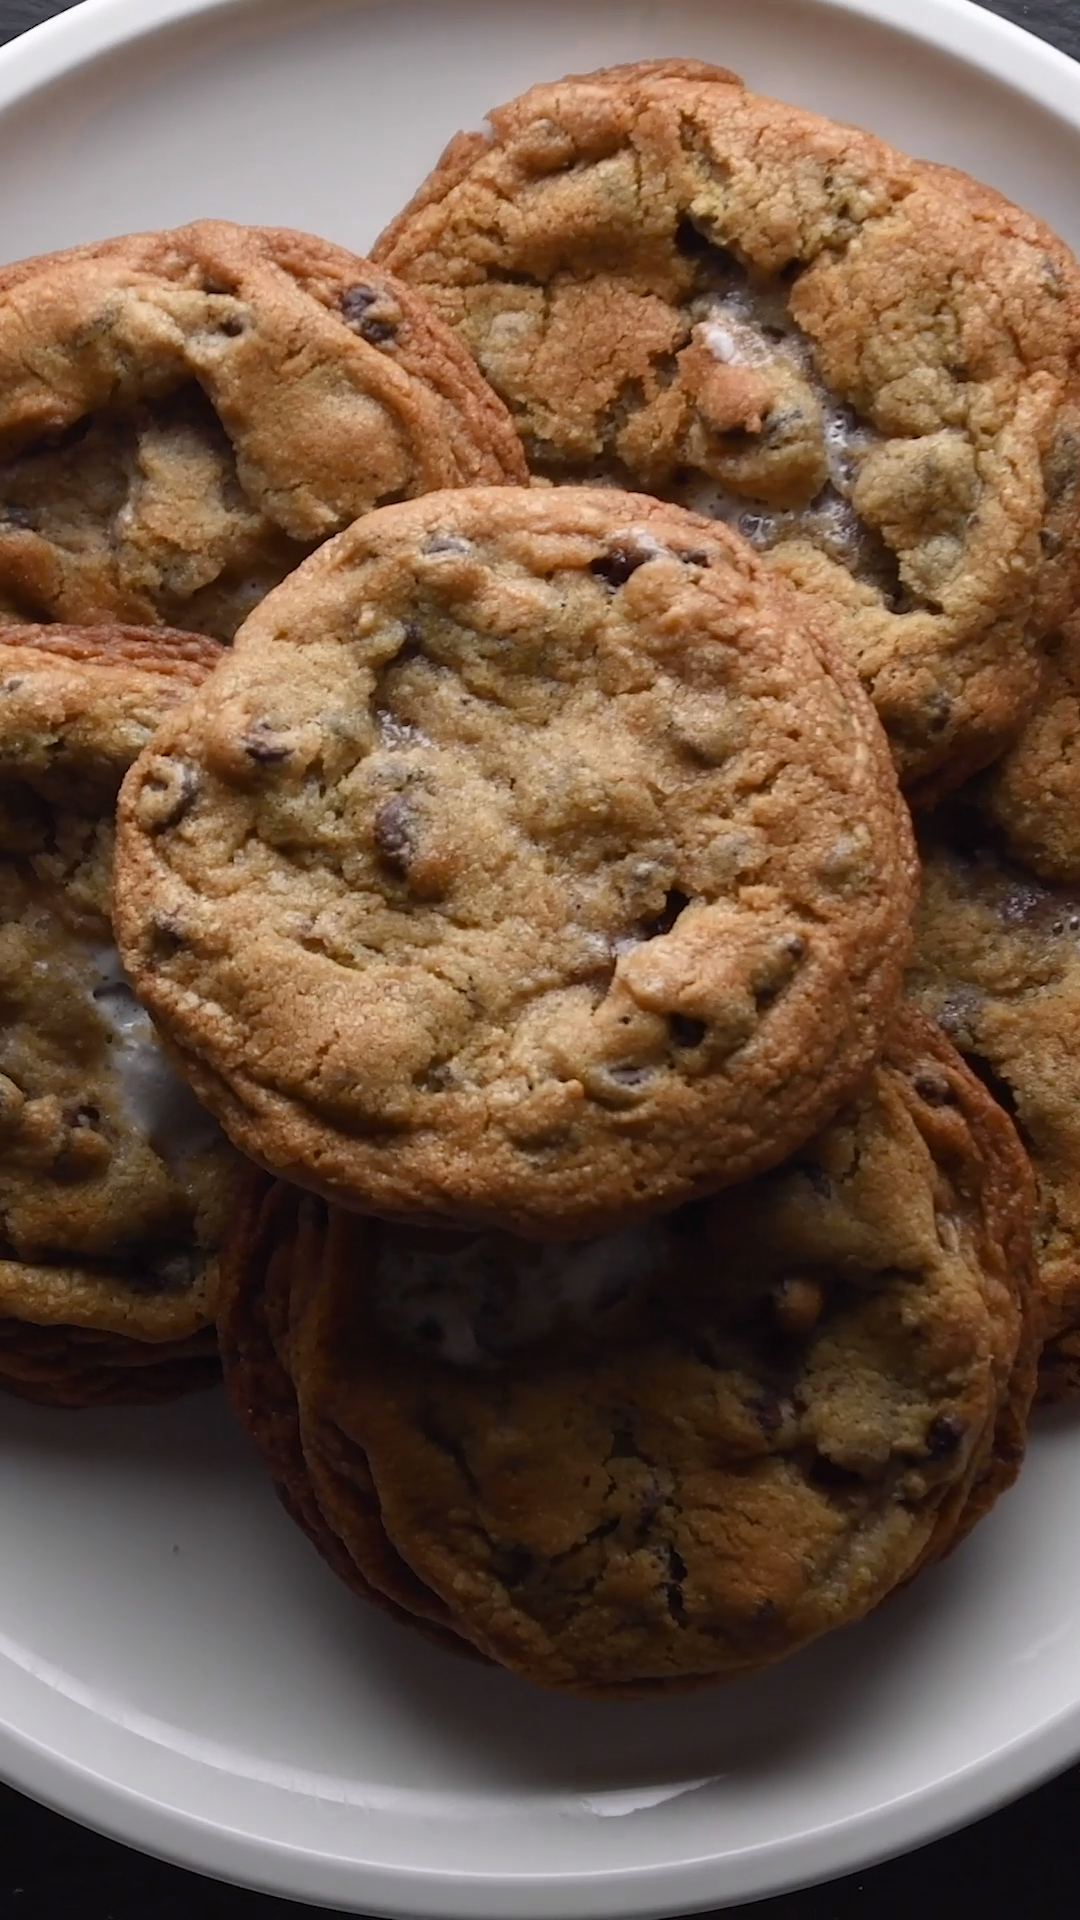 Want to Know More About Cookies? - Healthy Medicin